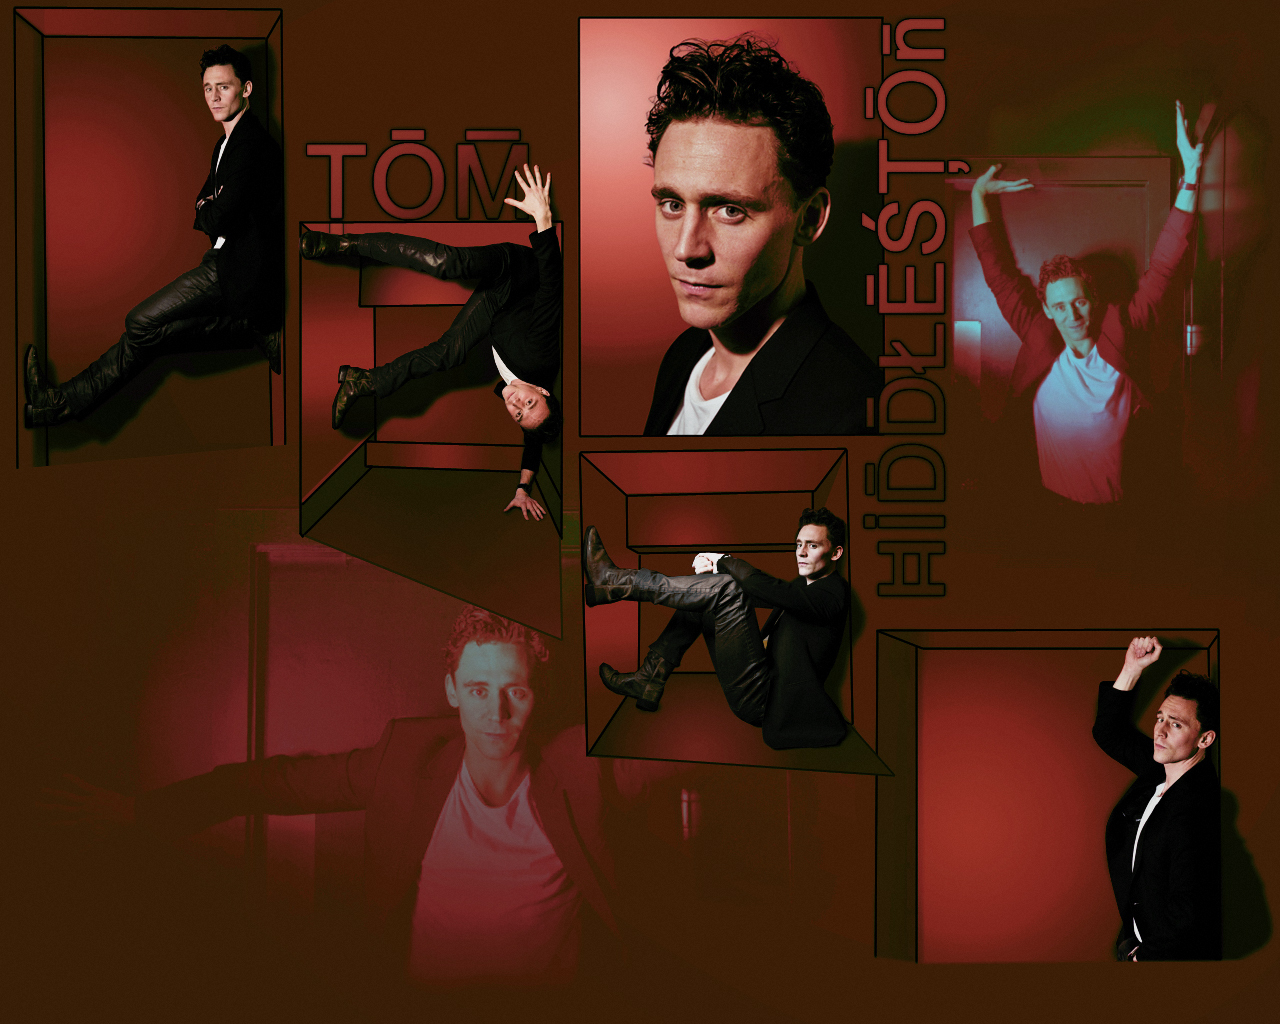 Tom Hiddleston images Tom Hiddleston 1280x1024 desktop wallpaper 1280x1024